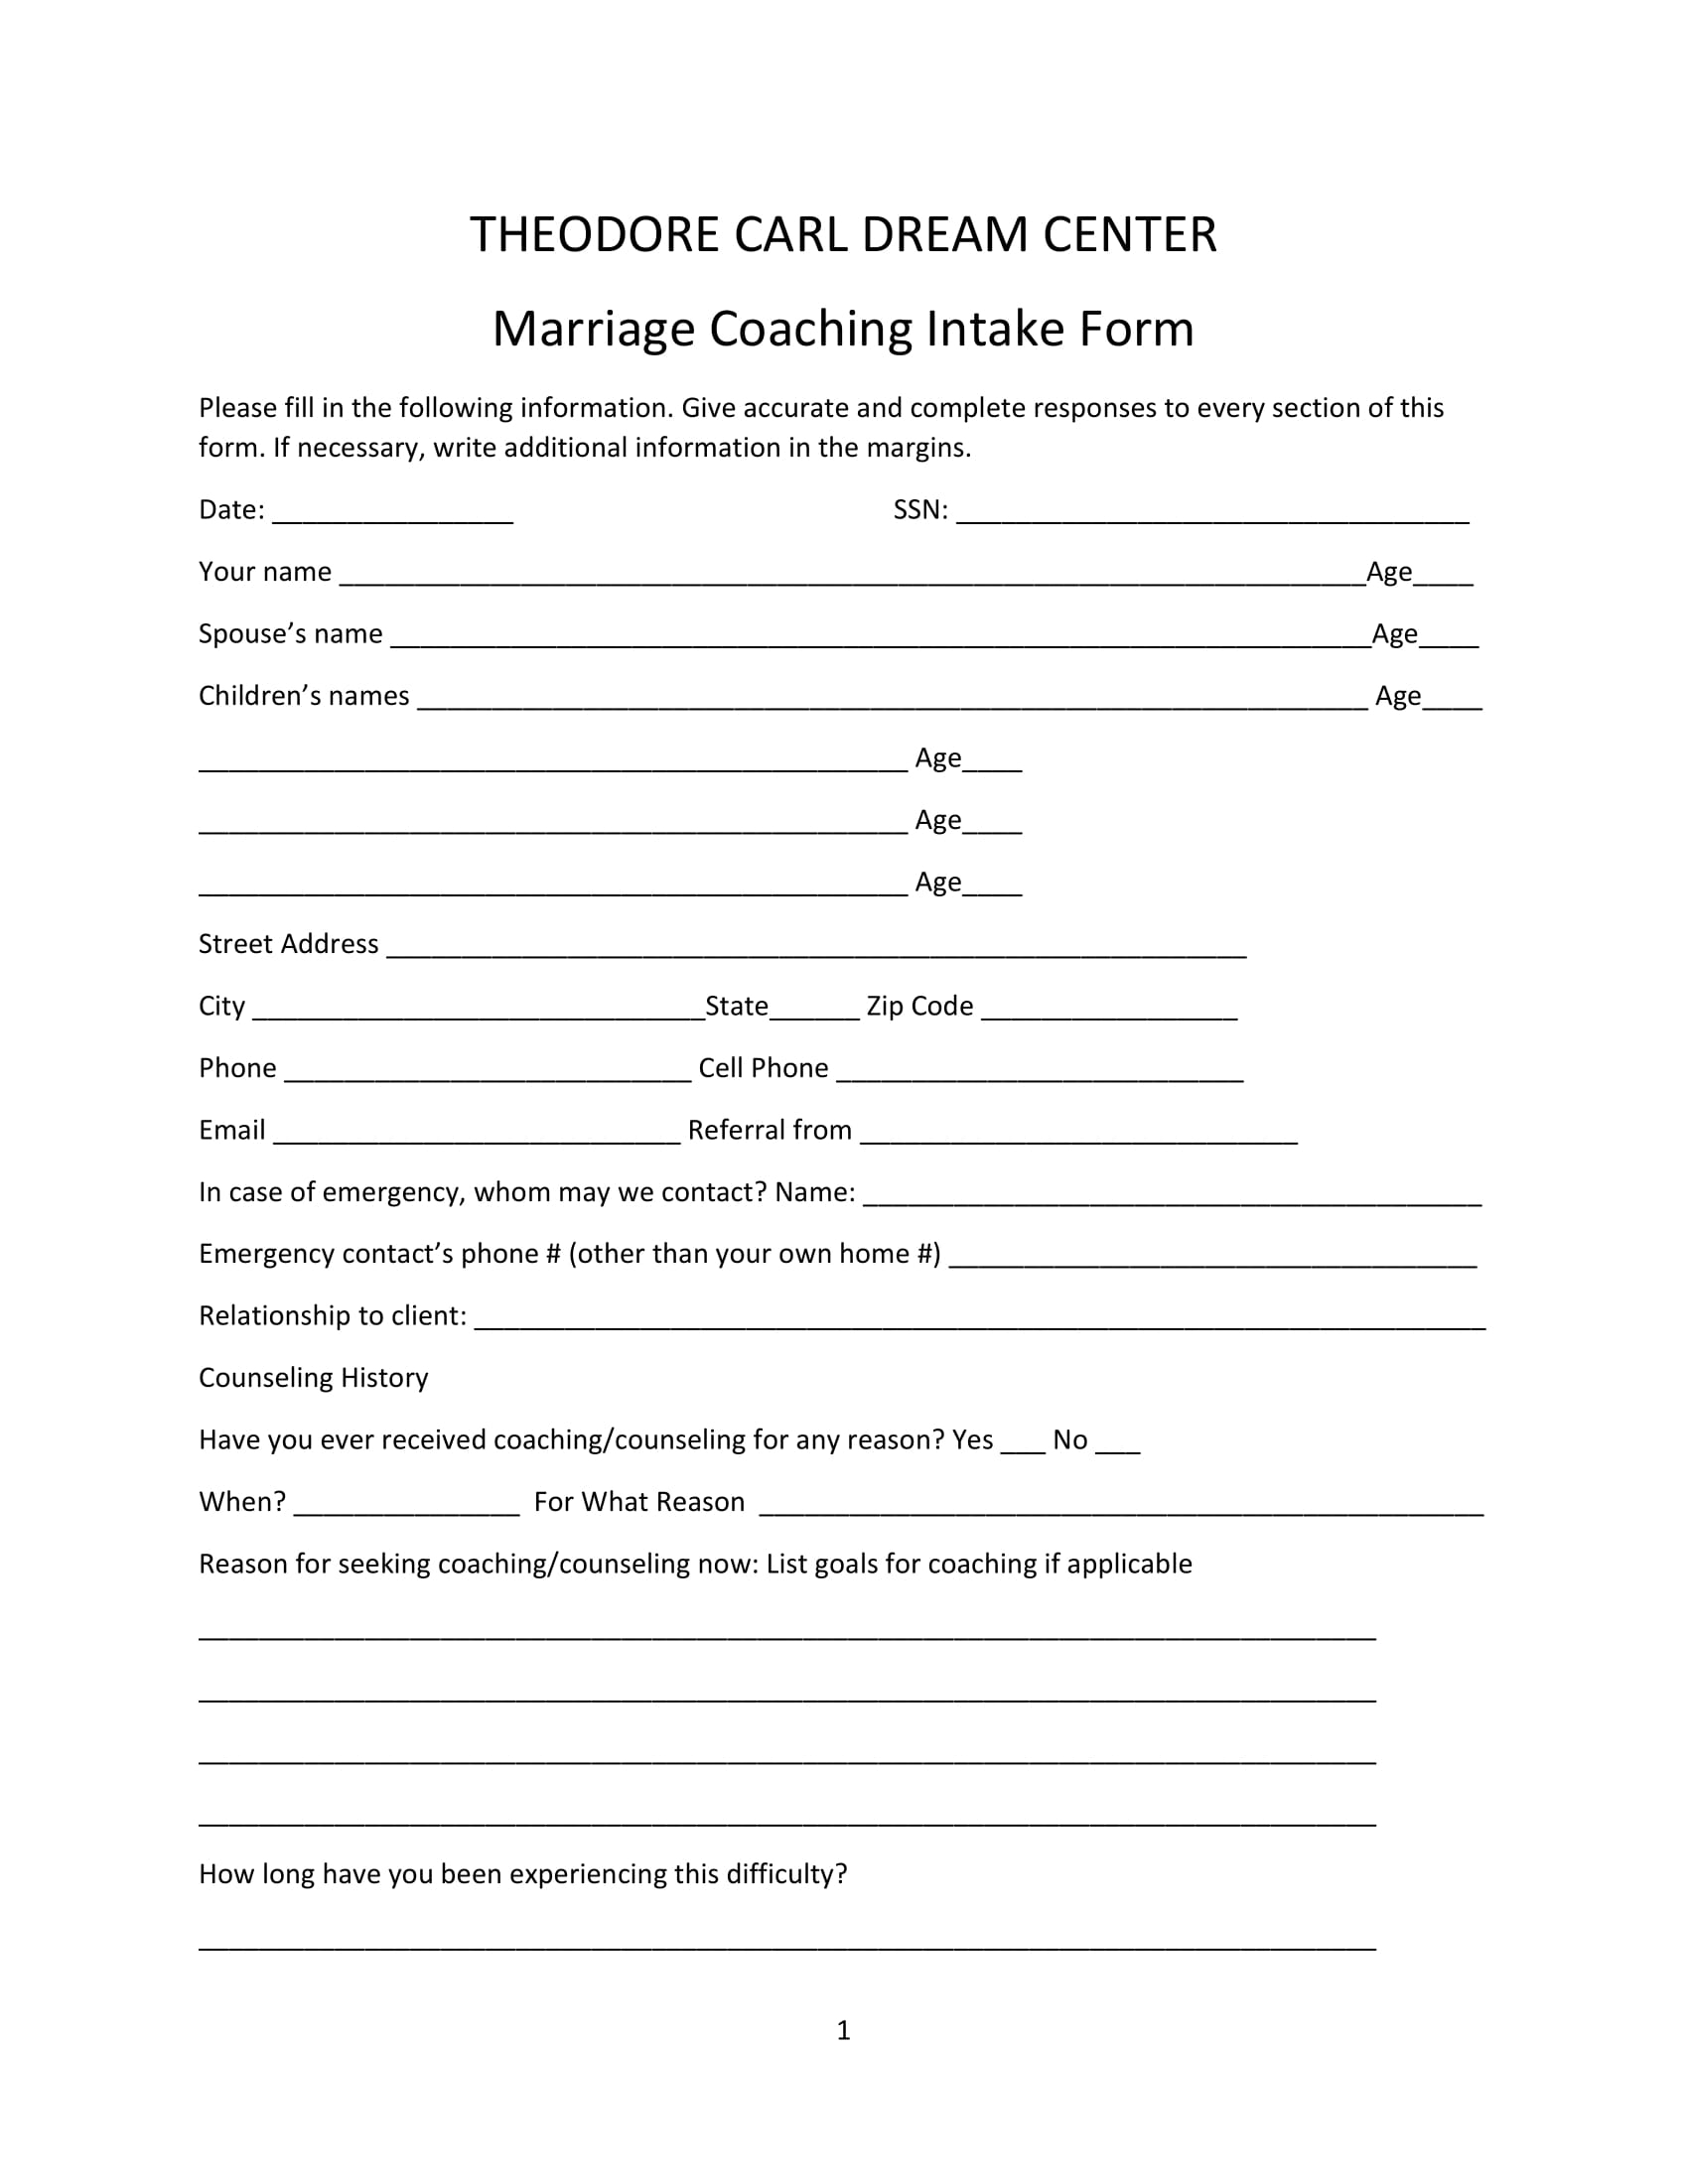 marriage coaching intake form 1